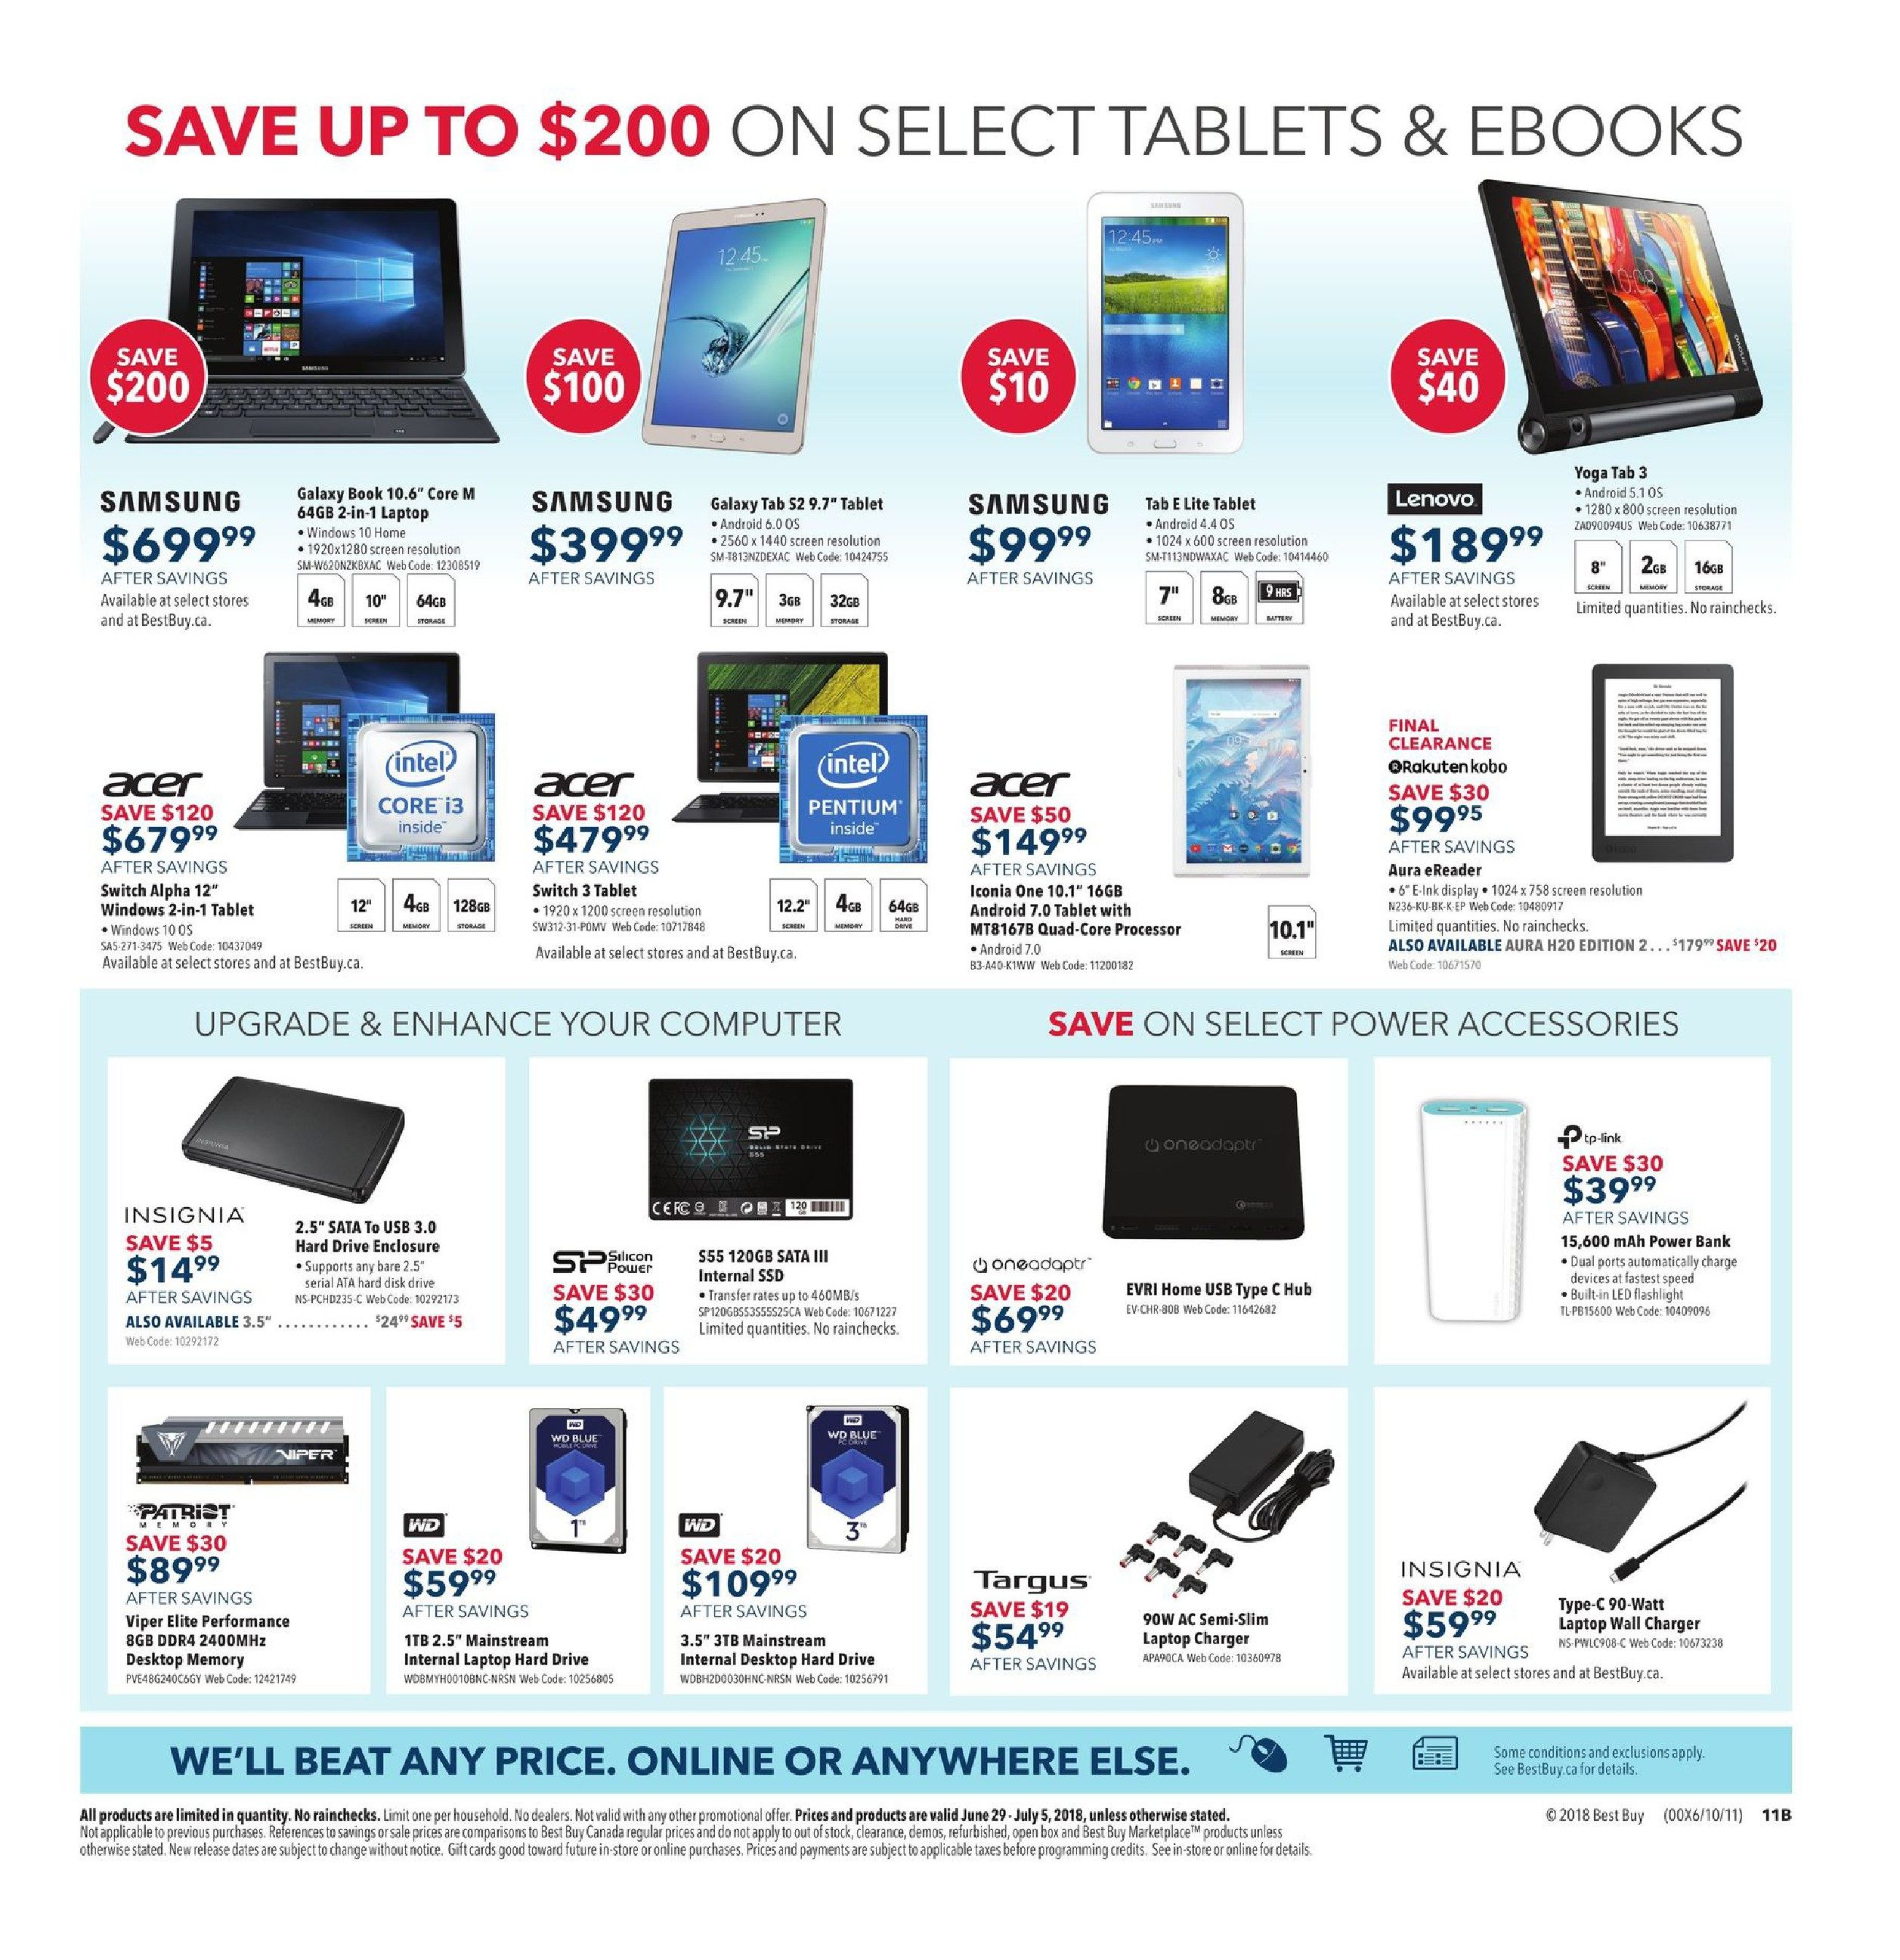 Best Buy Weekly Flyer Boxing Day In July Sale Jun 29 Kicker Car Speakers On 12 Inch Alpine Type R Wiring Diagram Jul 5